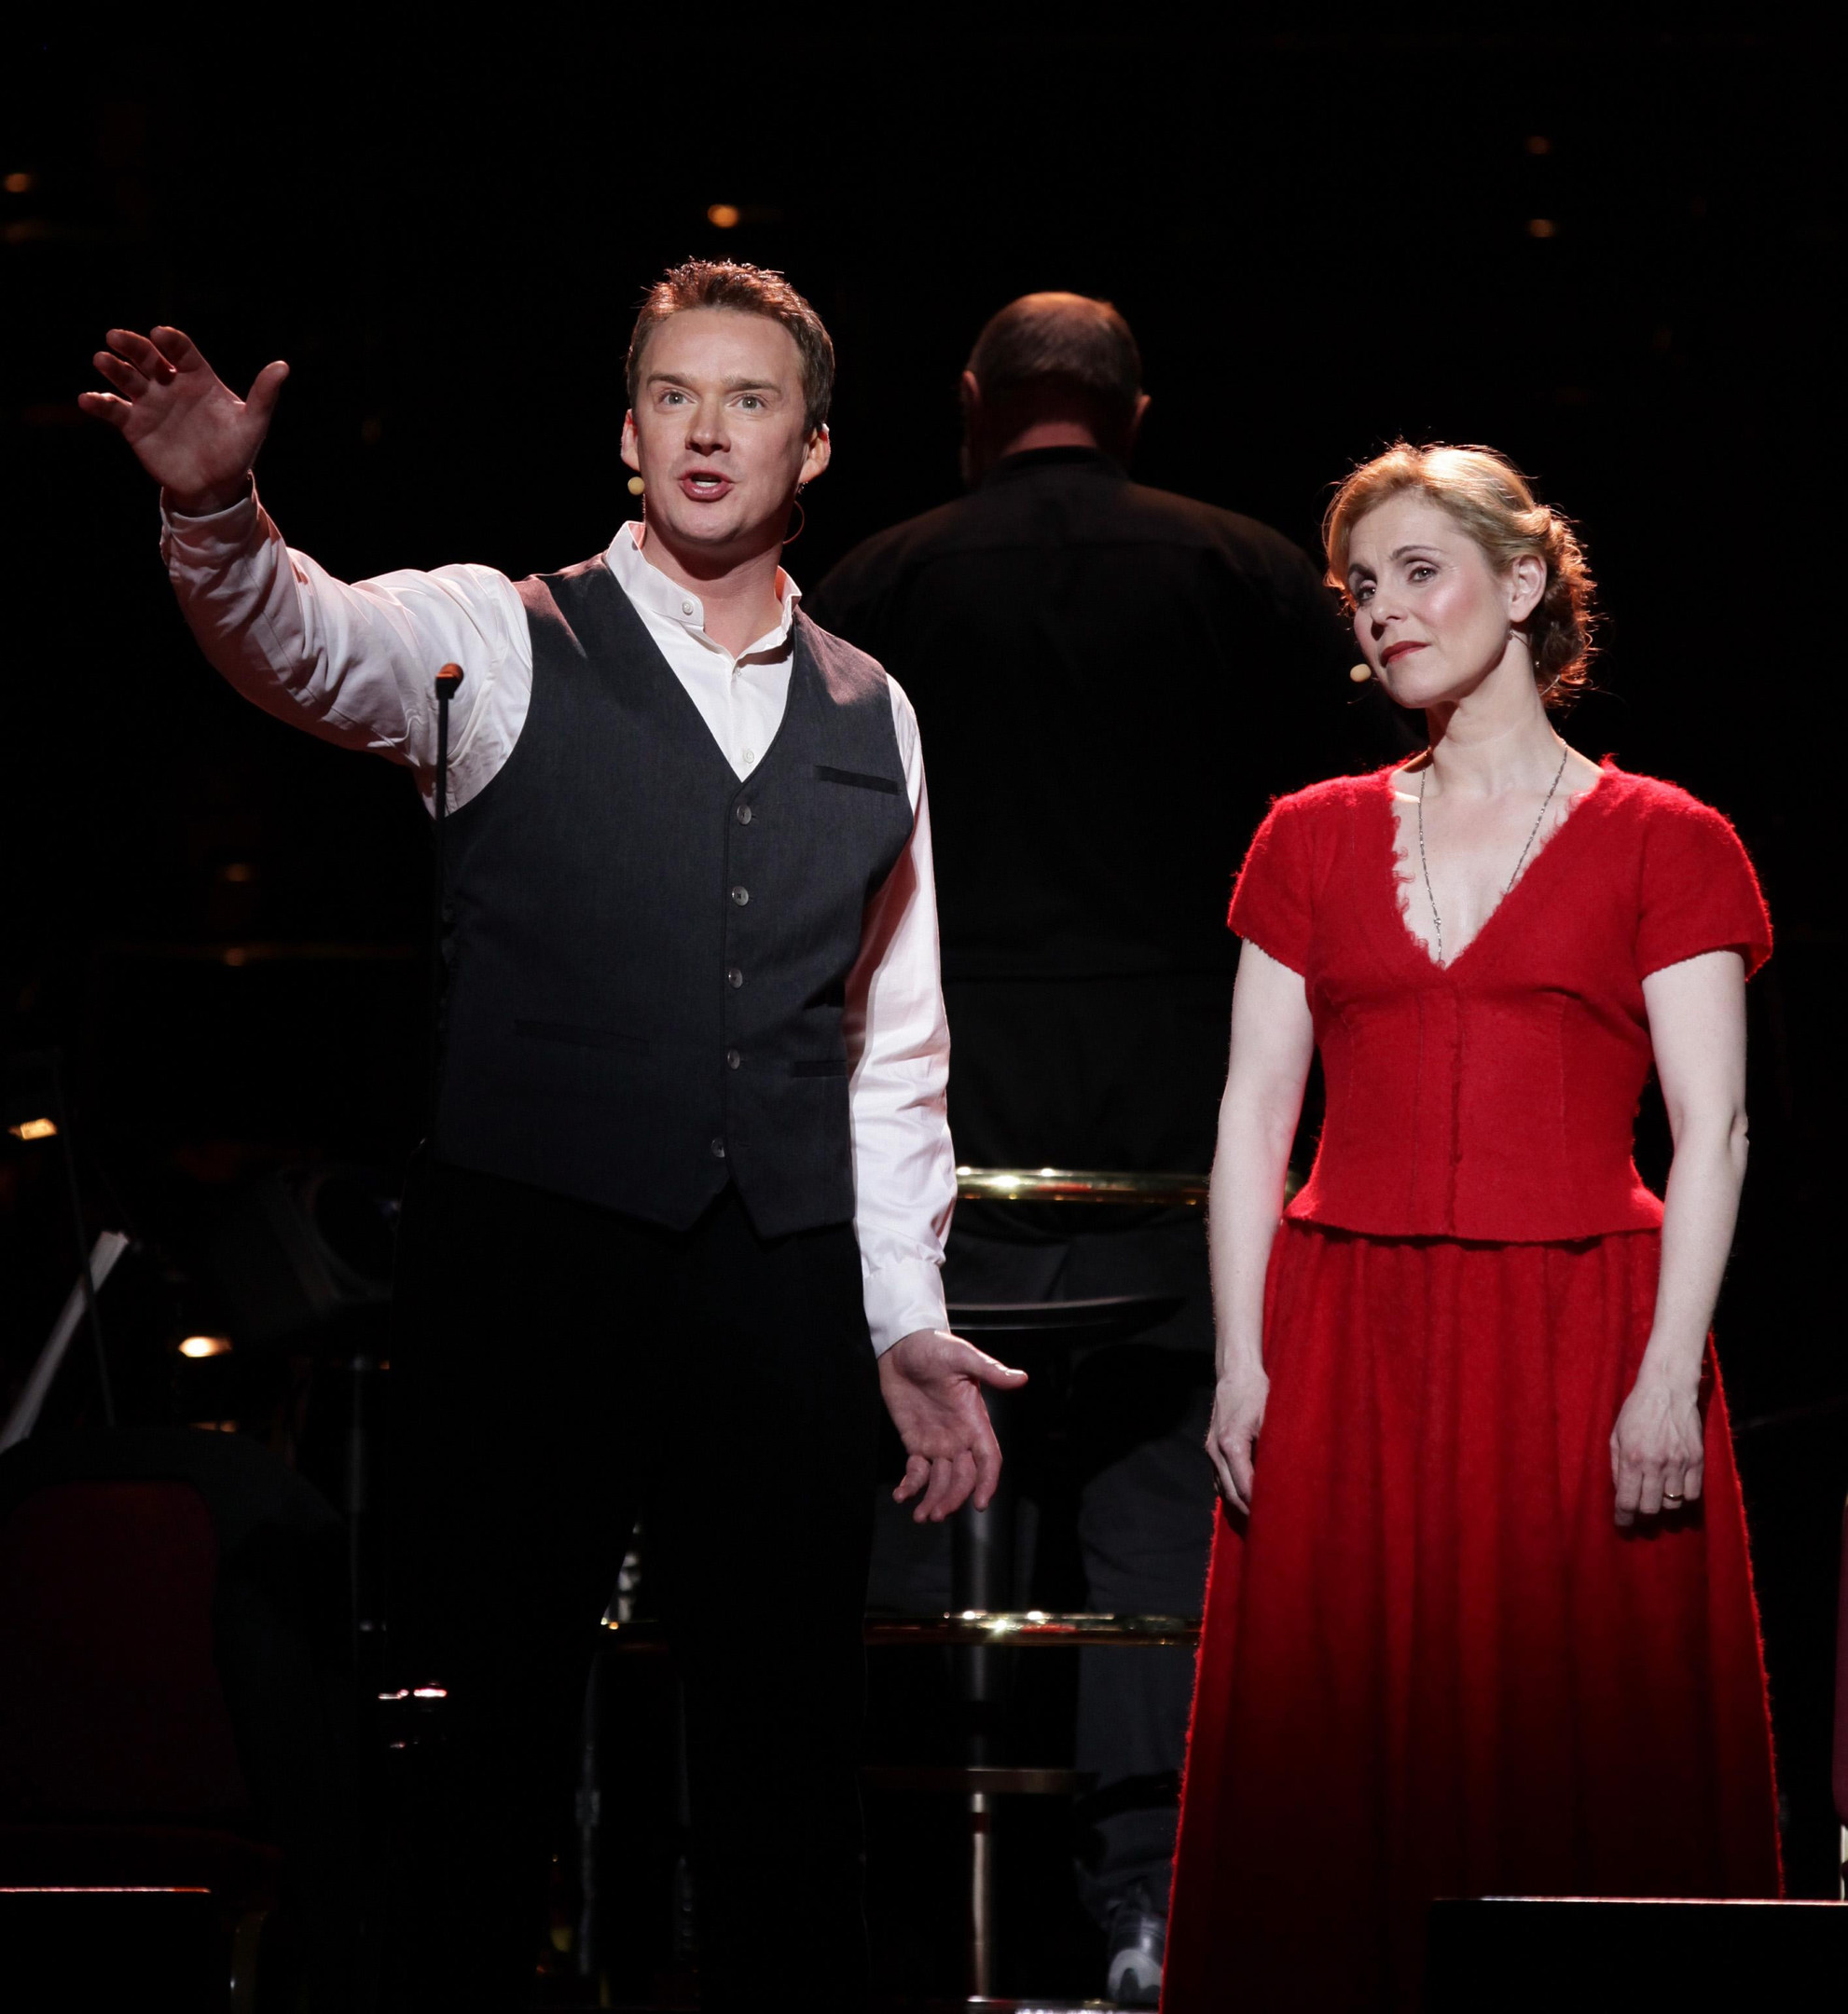 Russell Watson and Helen Sjoholm perform on stage during a rehearsal for Benny Andersson and Bjorn Ulvaeus musical 'Kristina', at the Royal Albert Hall in west London (PA)